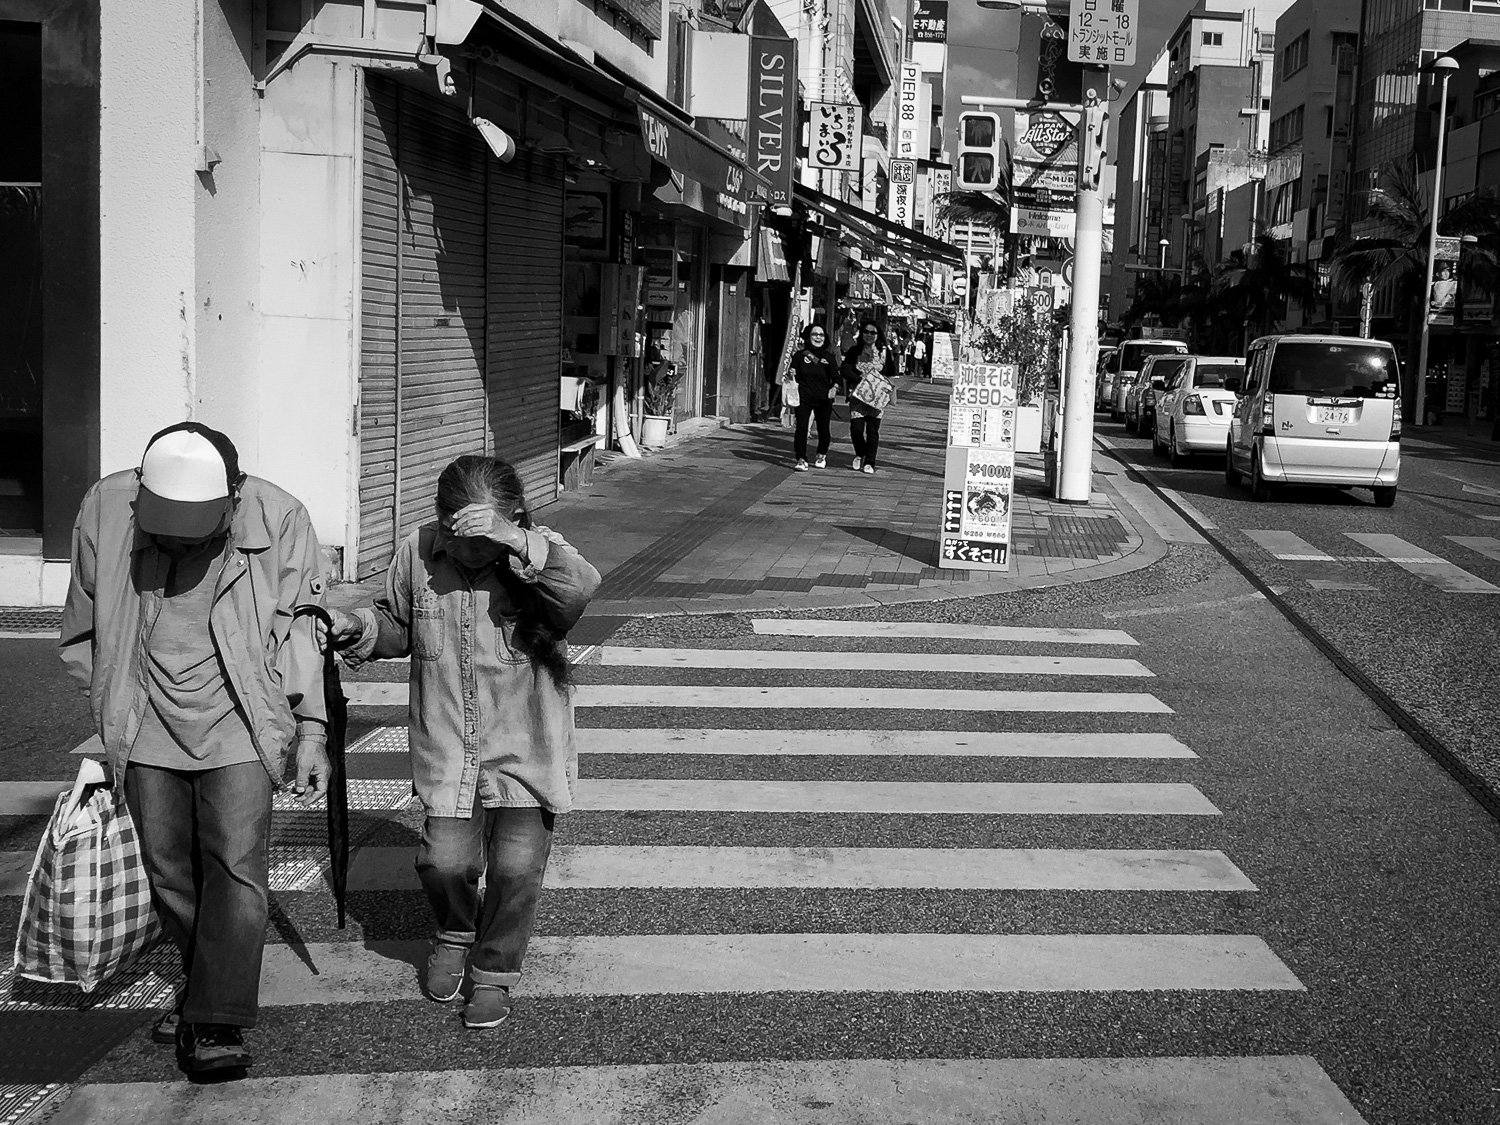 An elderly couple crossing the street in Naha, Okinawa, Japan. Apple iPhone 6 Plus at ISO 32, f2.2, 1/4000 sec. Converted to black and white in Lightroom Mobile.